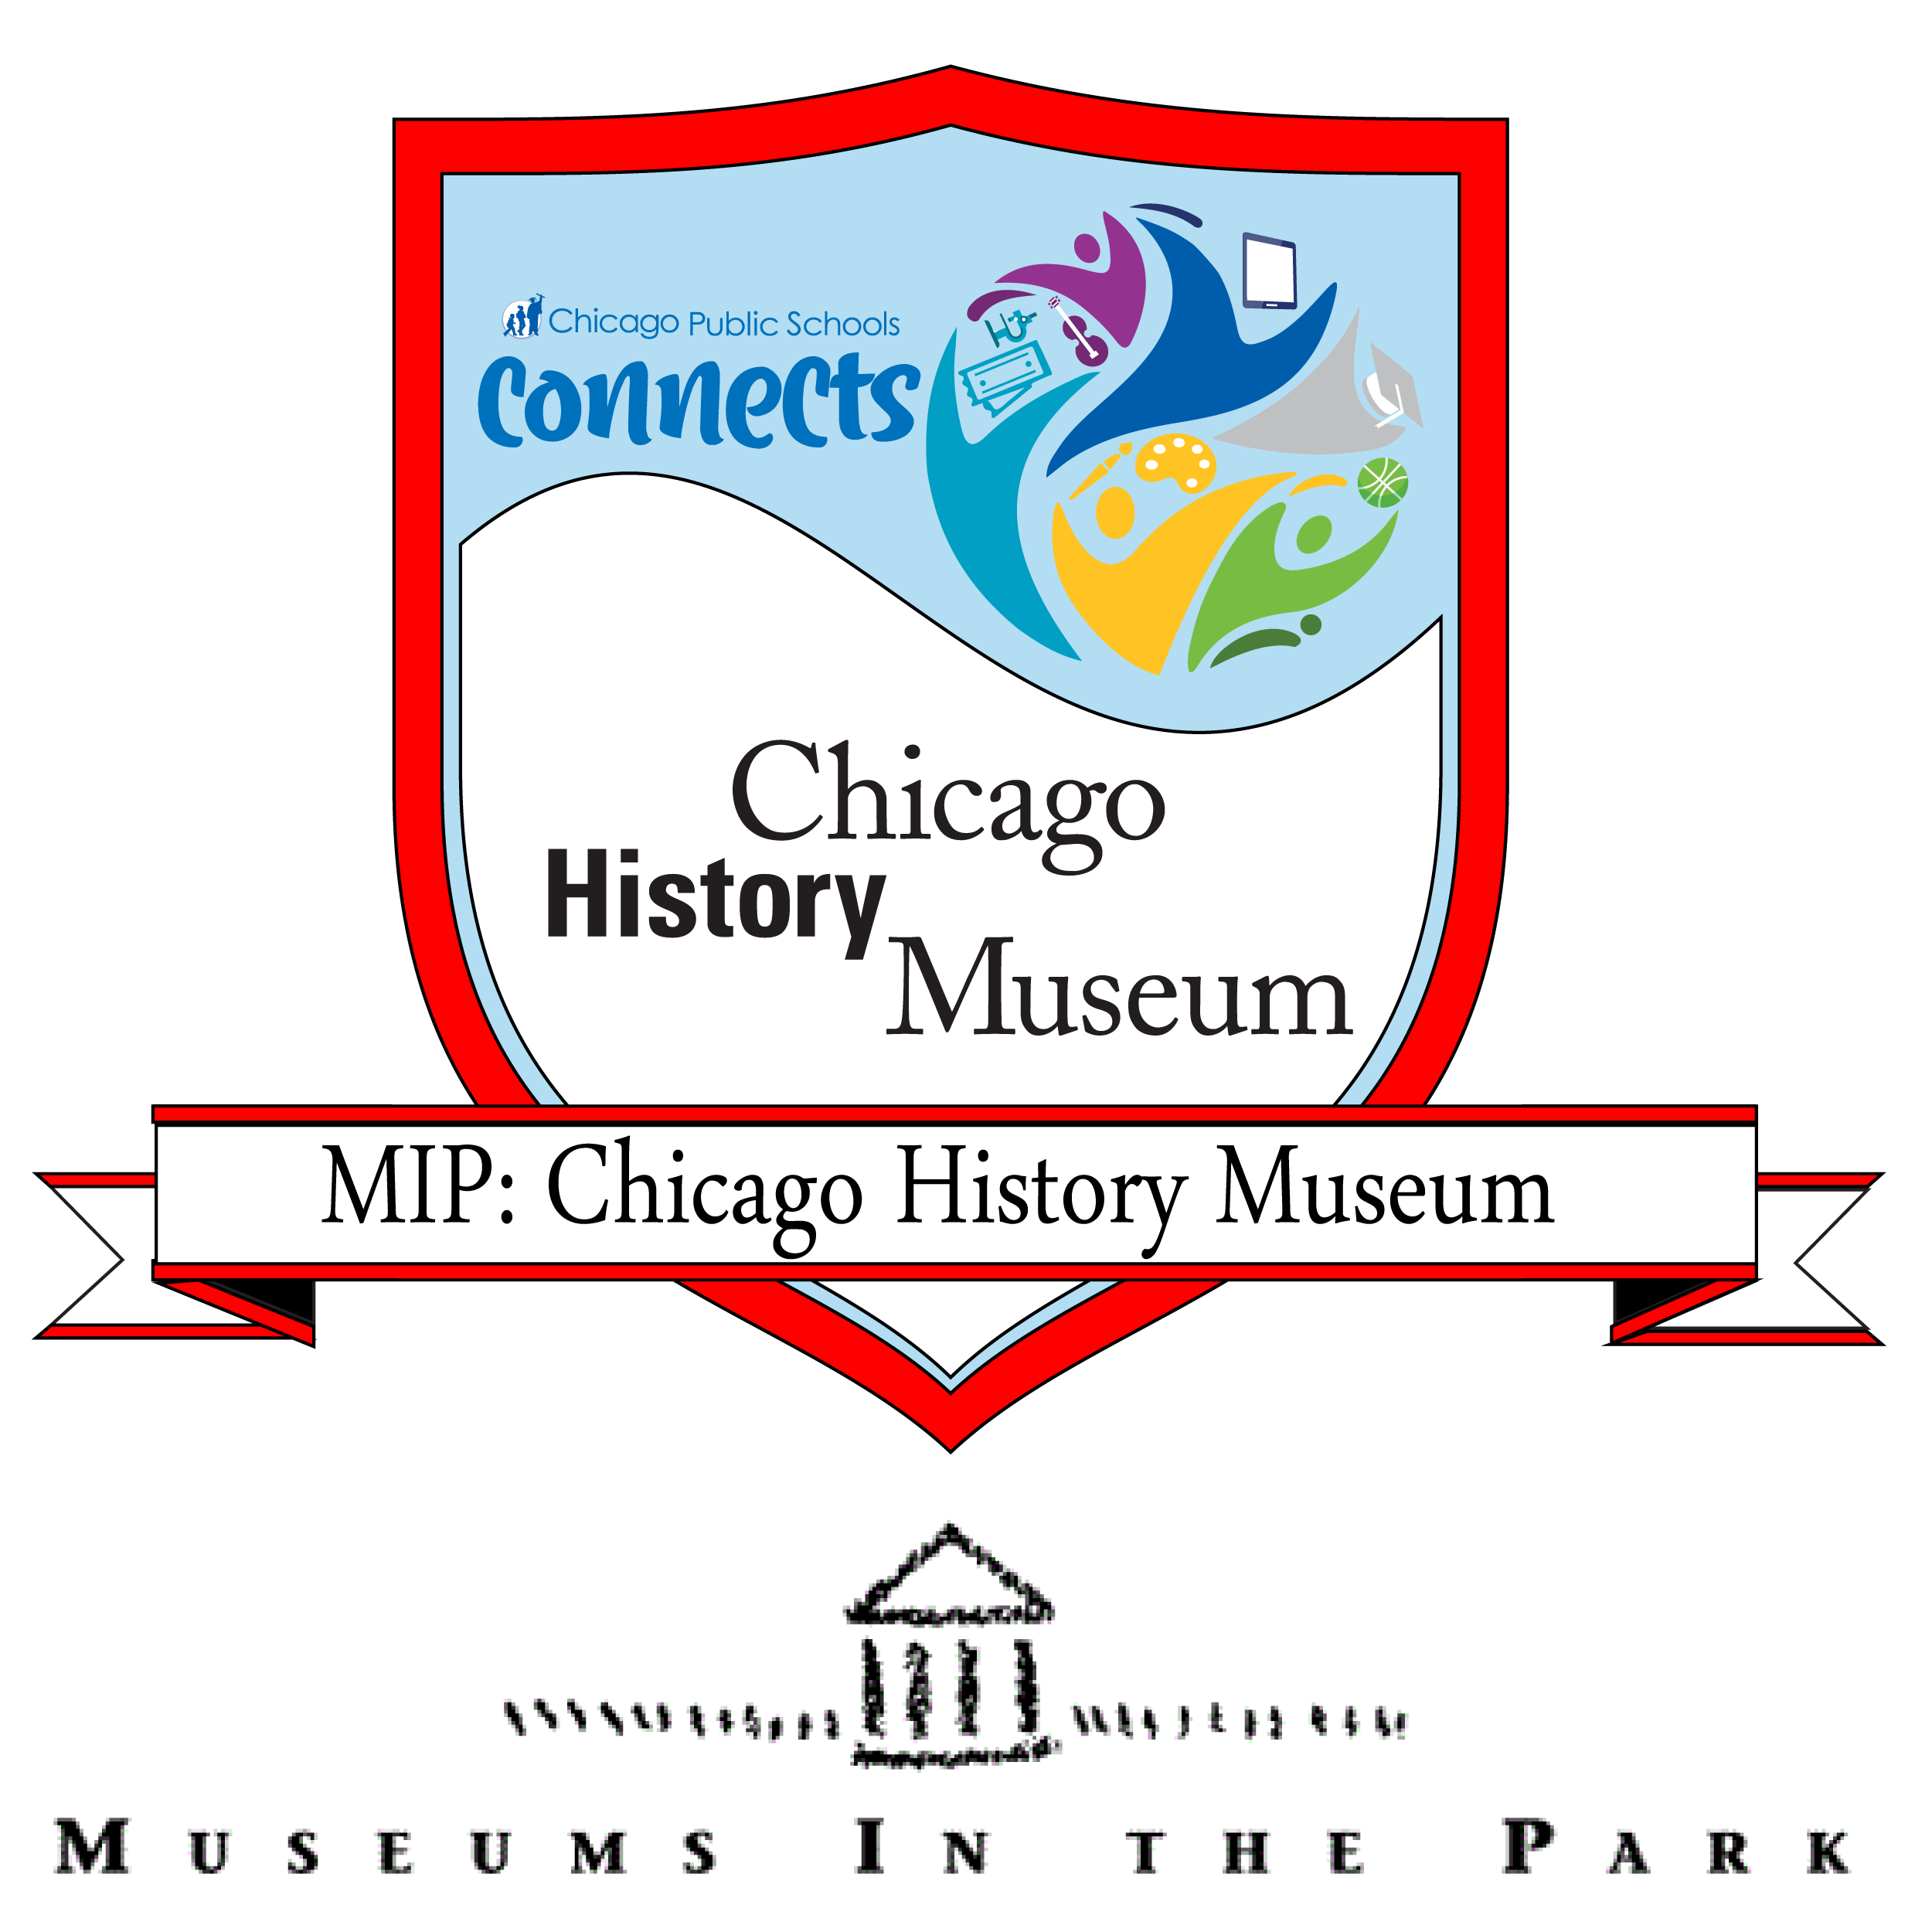 Museums in the Park: Chicago History Museum